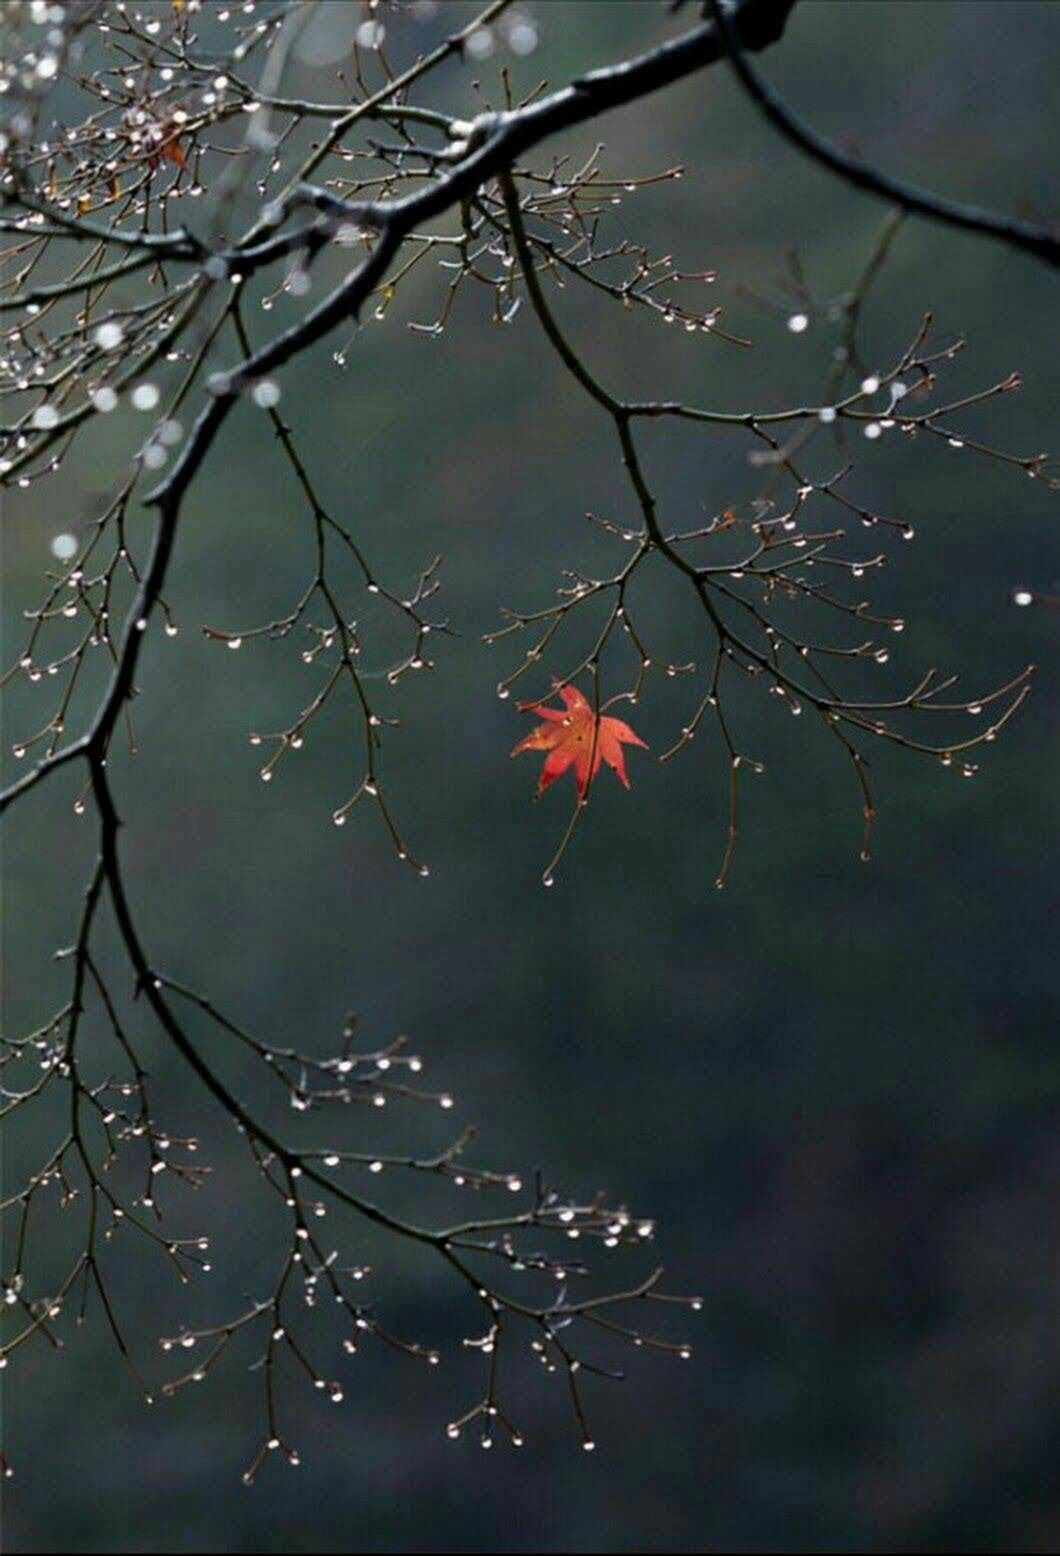 Just A Simple Thought Provoking Picture Make It Deep And Meaningful Or As Simple As It Appears Autumncolours Nature Photography Beautiful Nature Nature Pictures